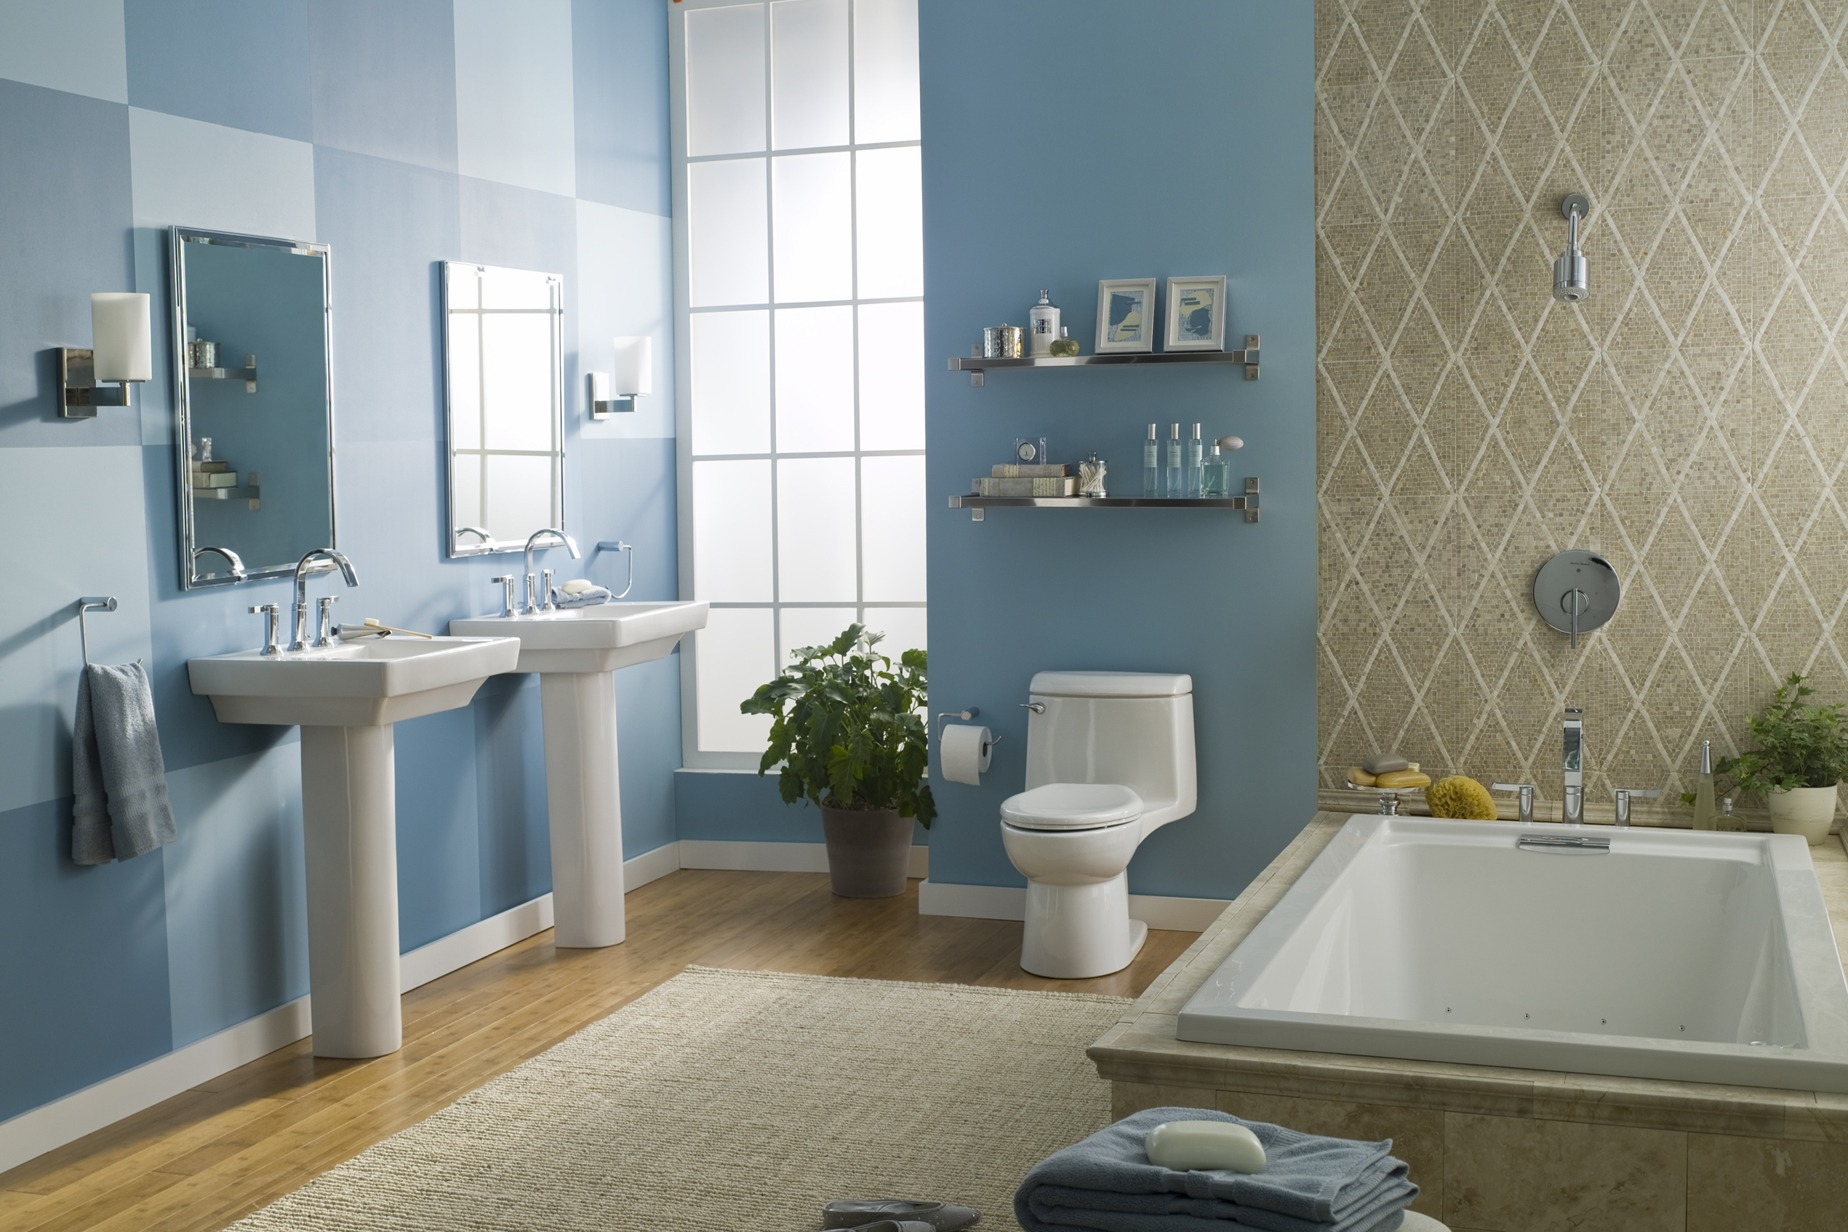 13 Pieces for a Complete Bathroom Re-Do - ZING Blog by Quicken Loans ...